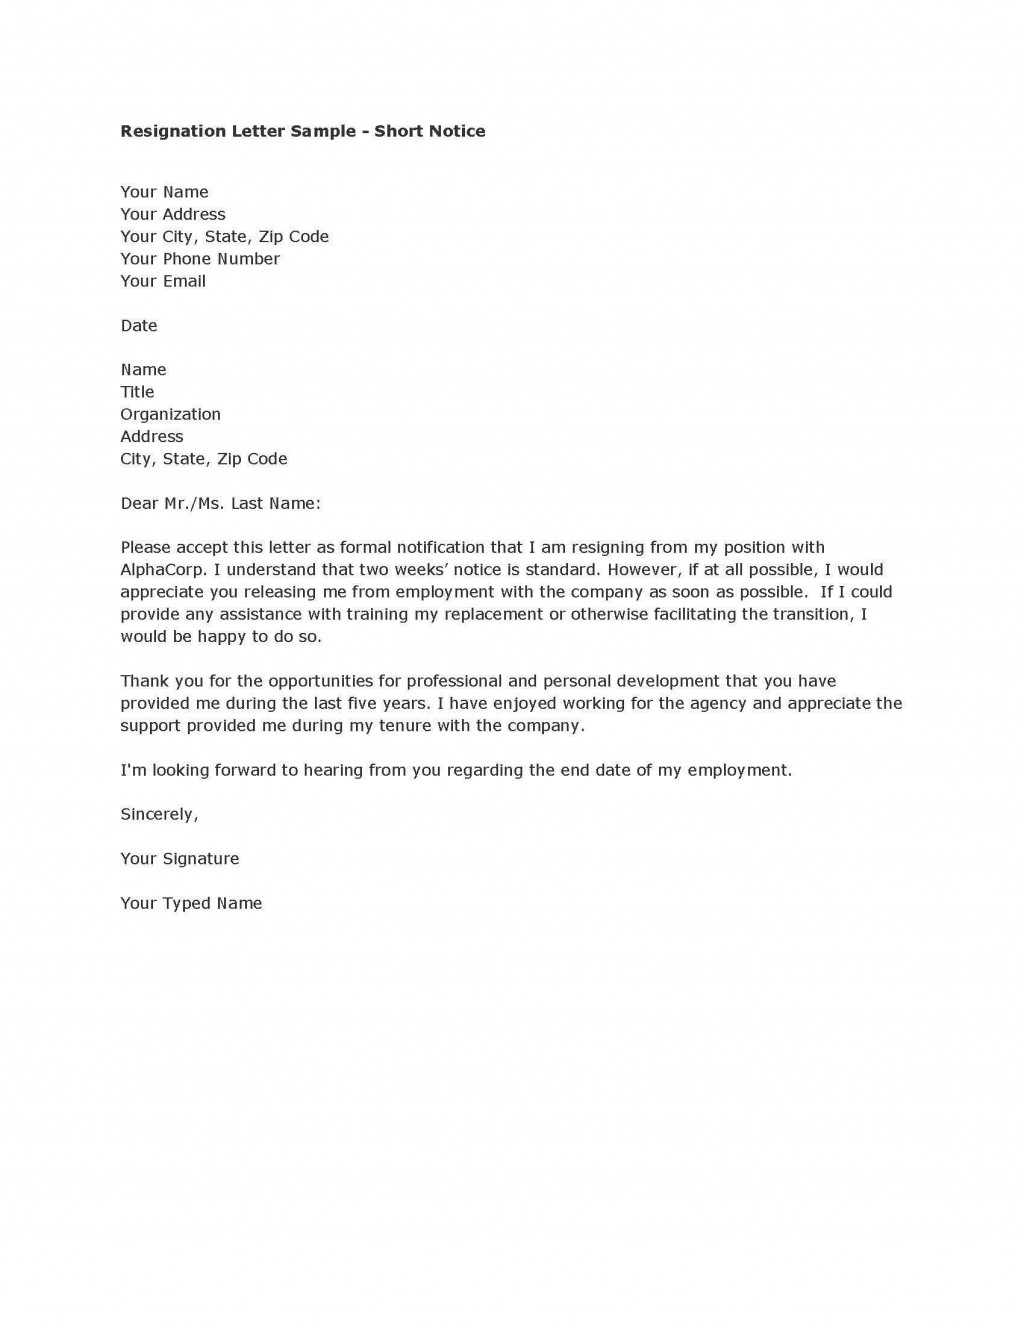 003 Remarkable Template For Letter Of Resignation Design  Free With Notice Period WordLarge